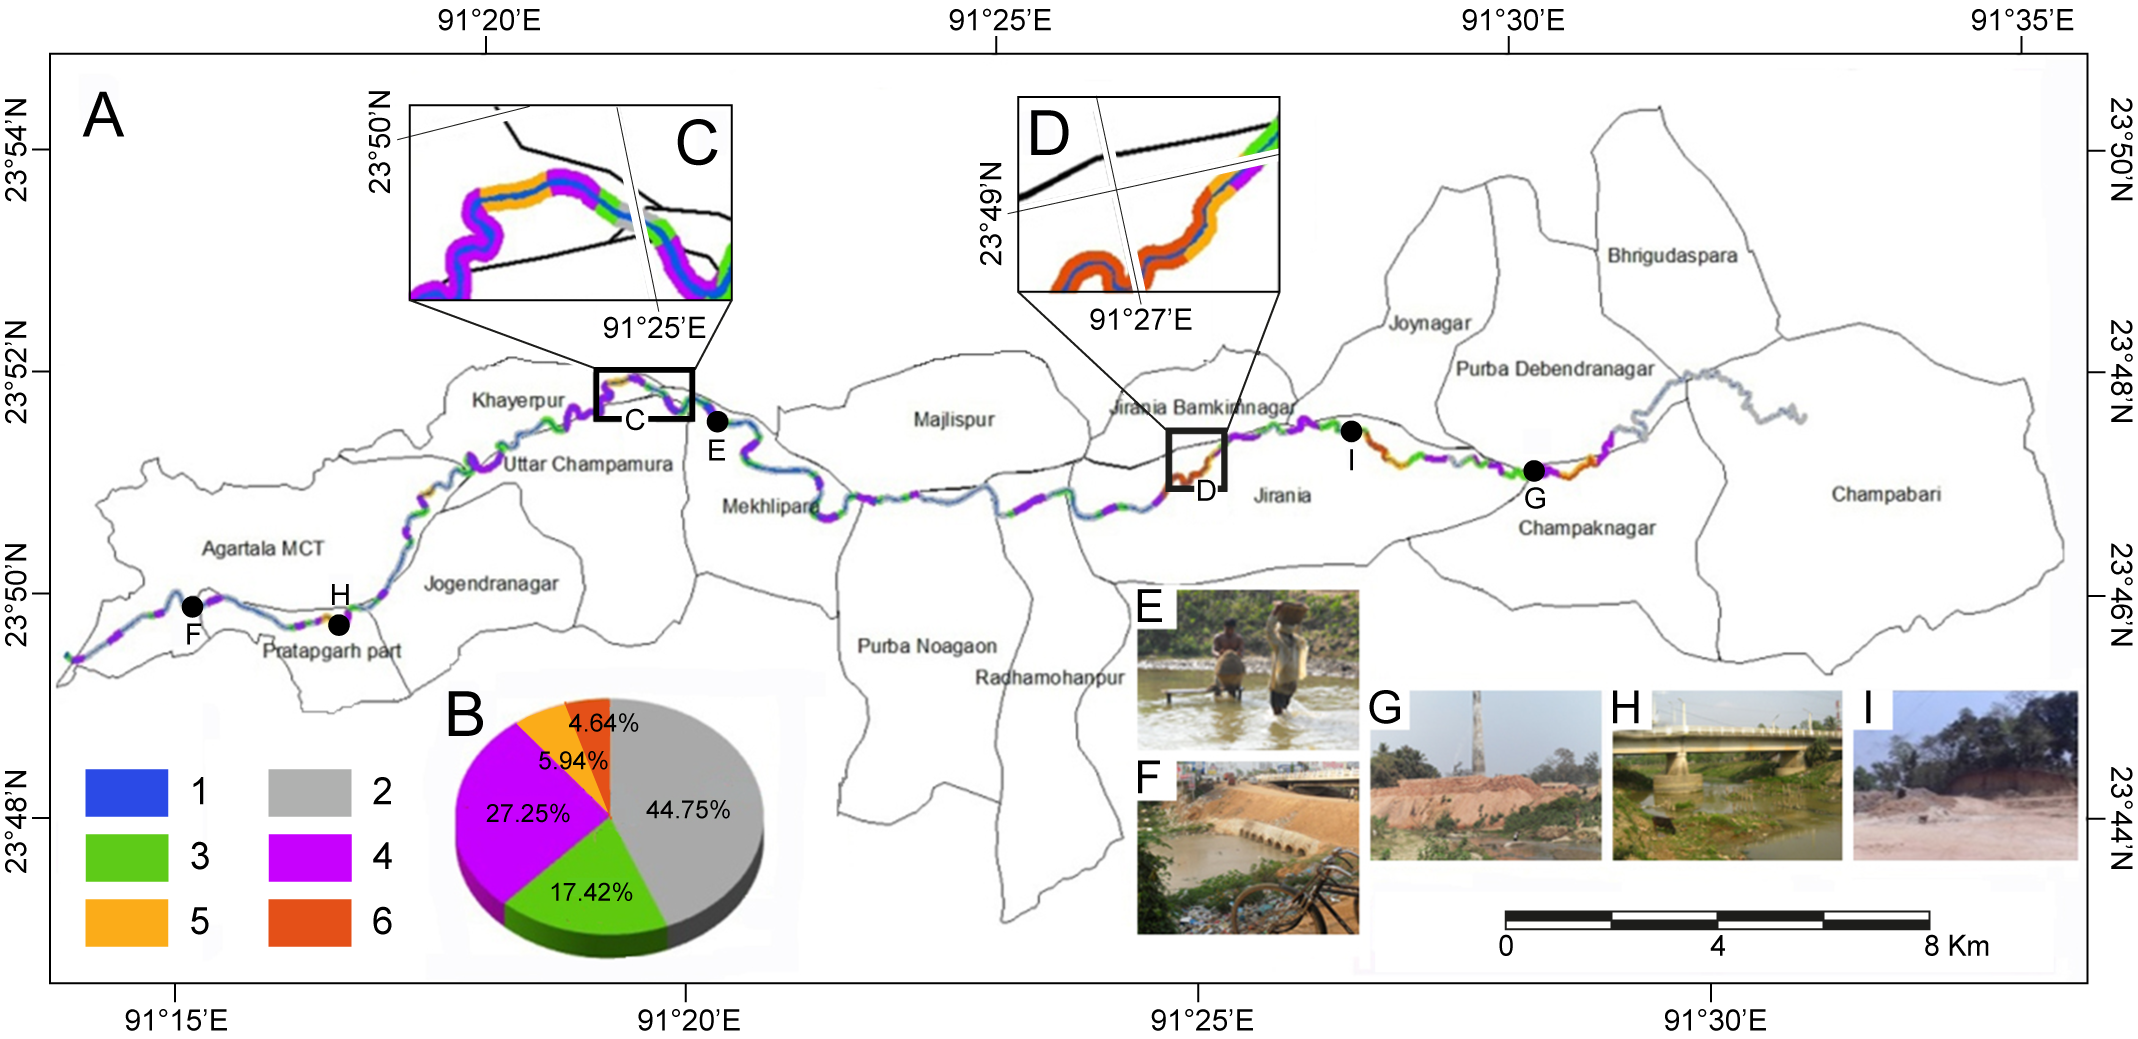 Carte De Linde Avec Region Tracees.Anthropogenic Impacts On The Morphology Of The Haora River